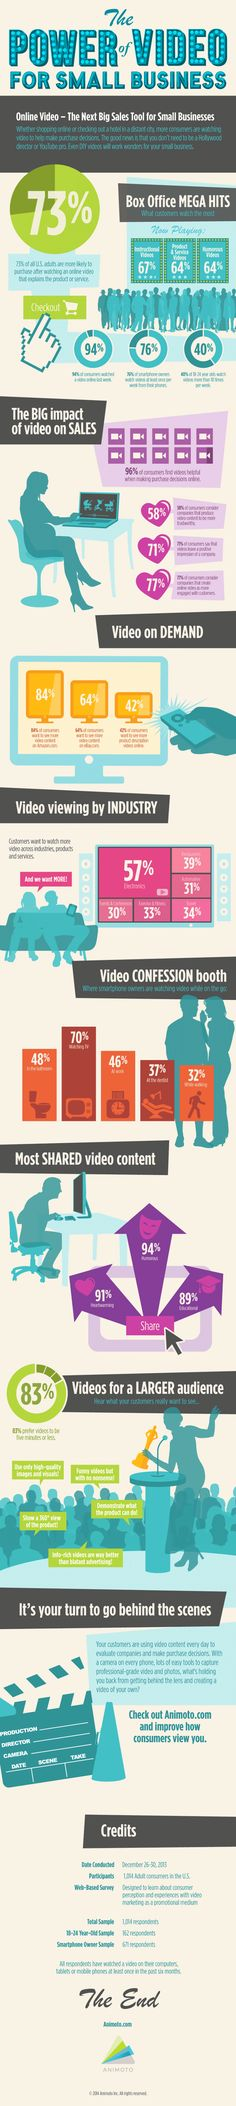 The Power of Video for Small Business [infographic]